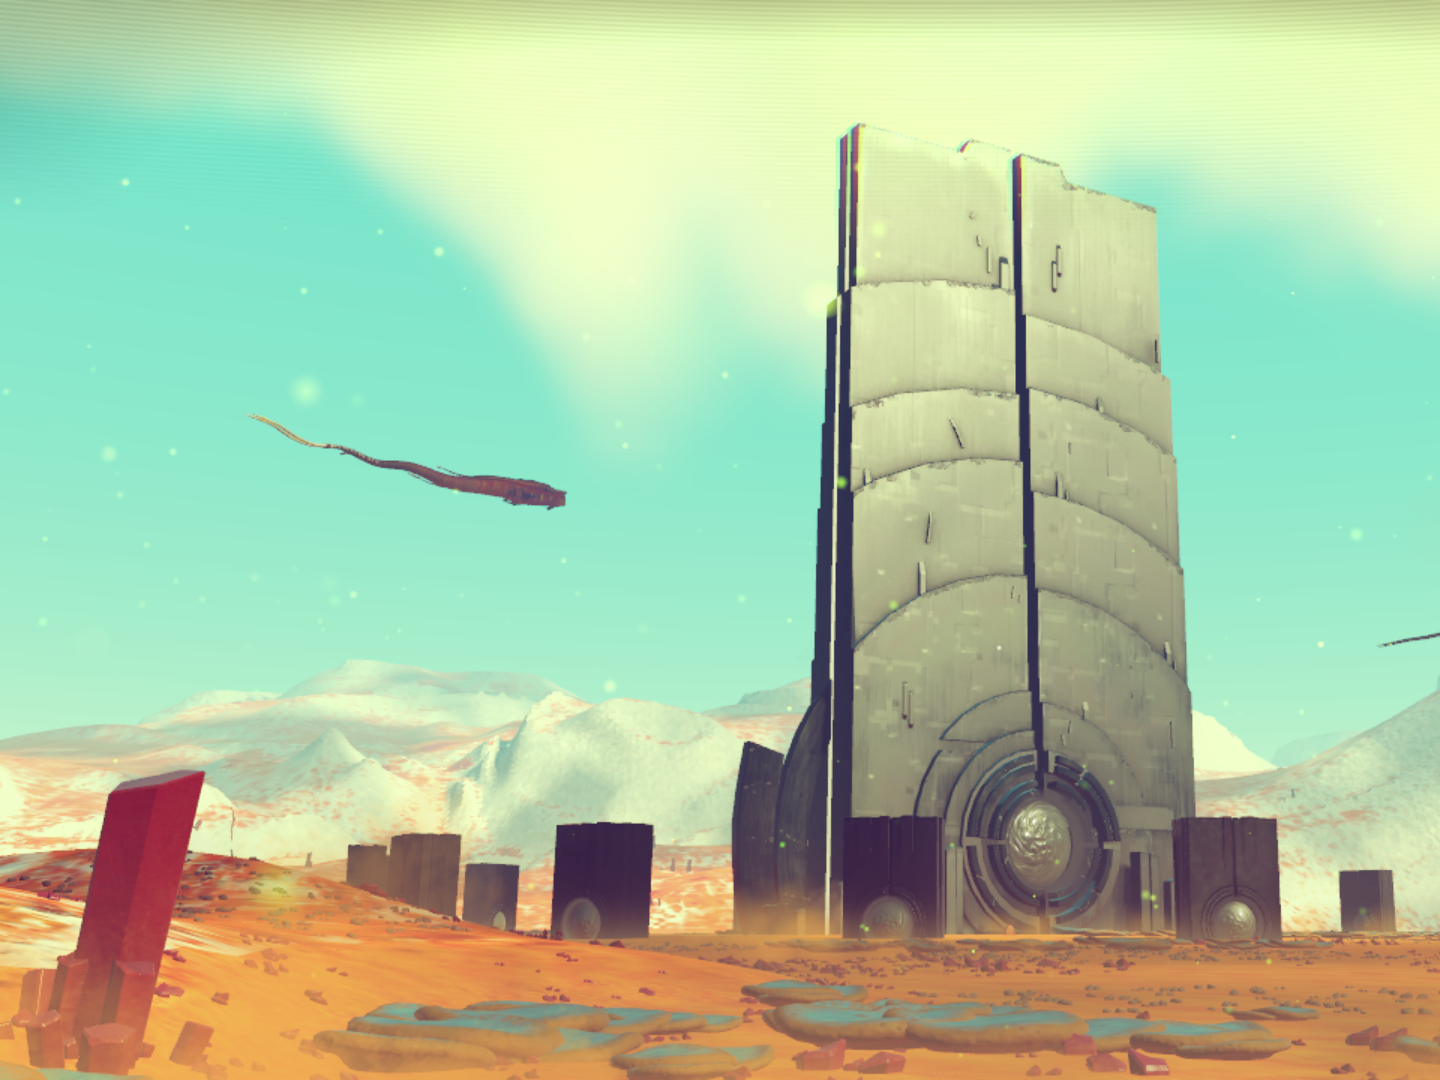 It's Best to Scientifically Name Your 'No Man's Sky' Critters